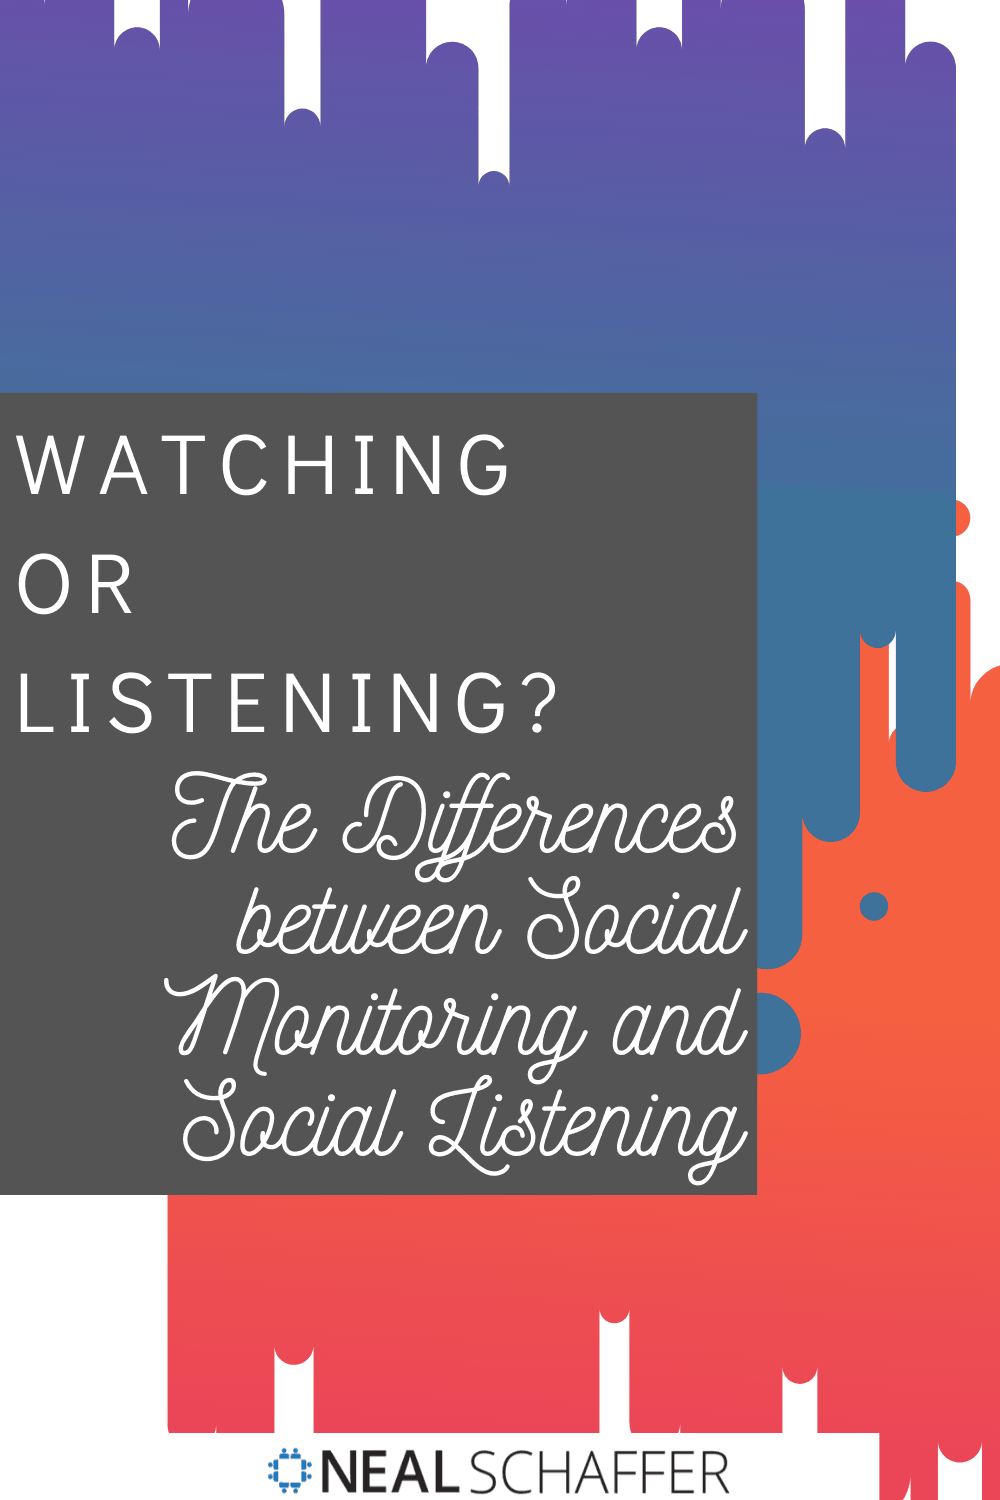 Do you understand the differences between Social Listening and Social Media Monitoring? If not you should - read on for why and detailed explanations.